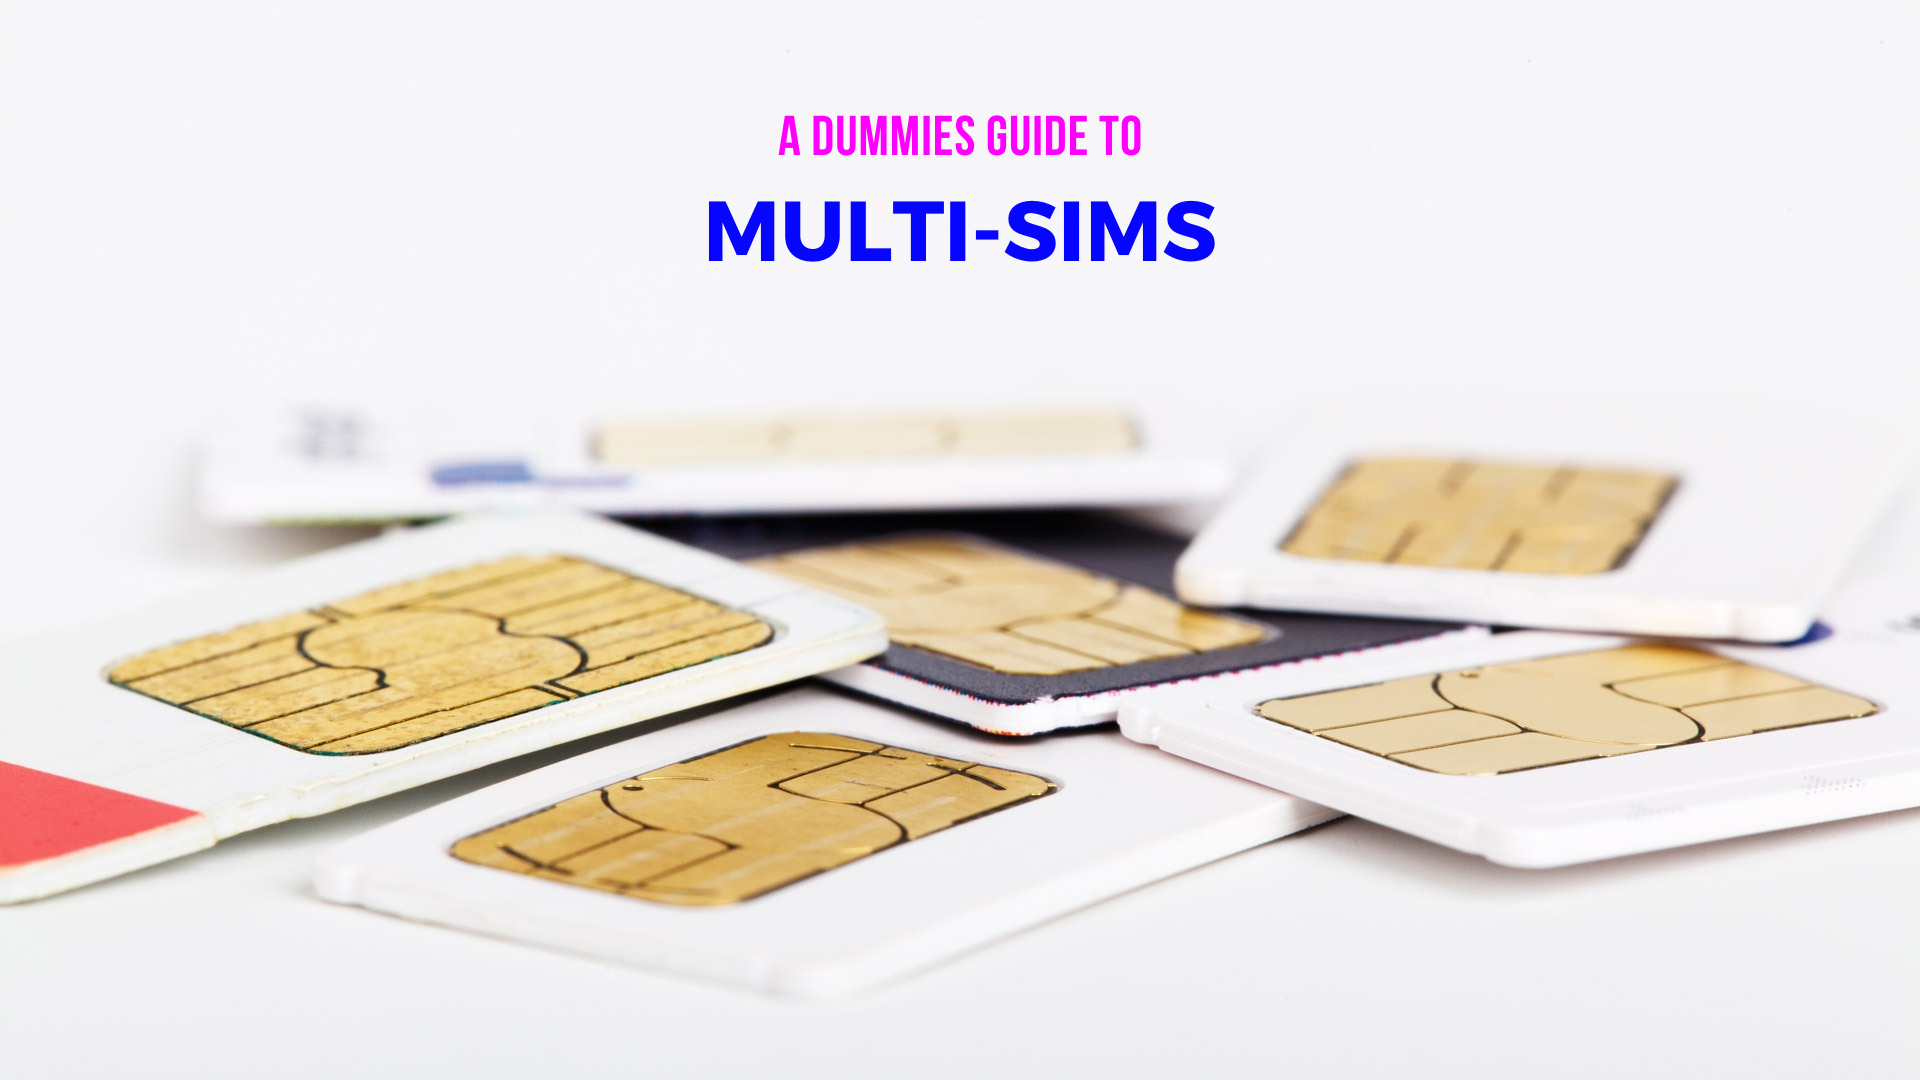 WTF is a Multi-SIM?